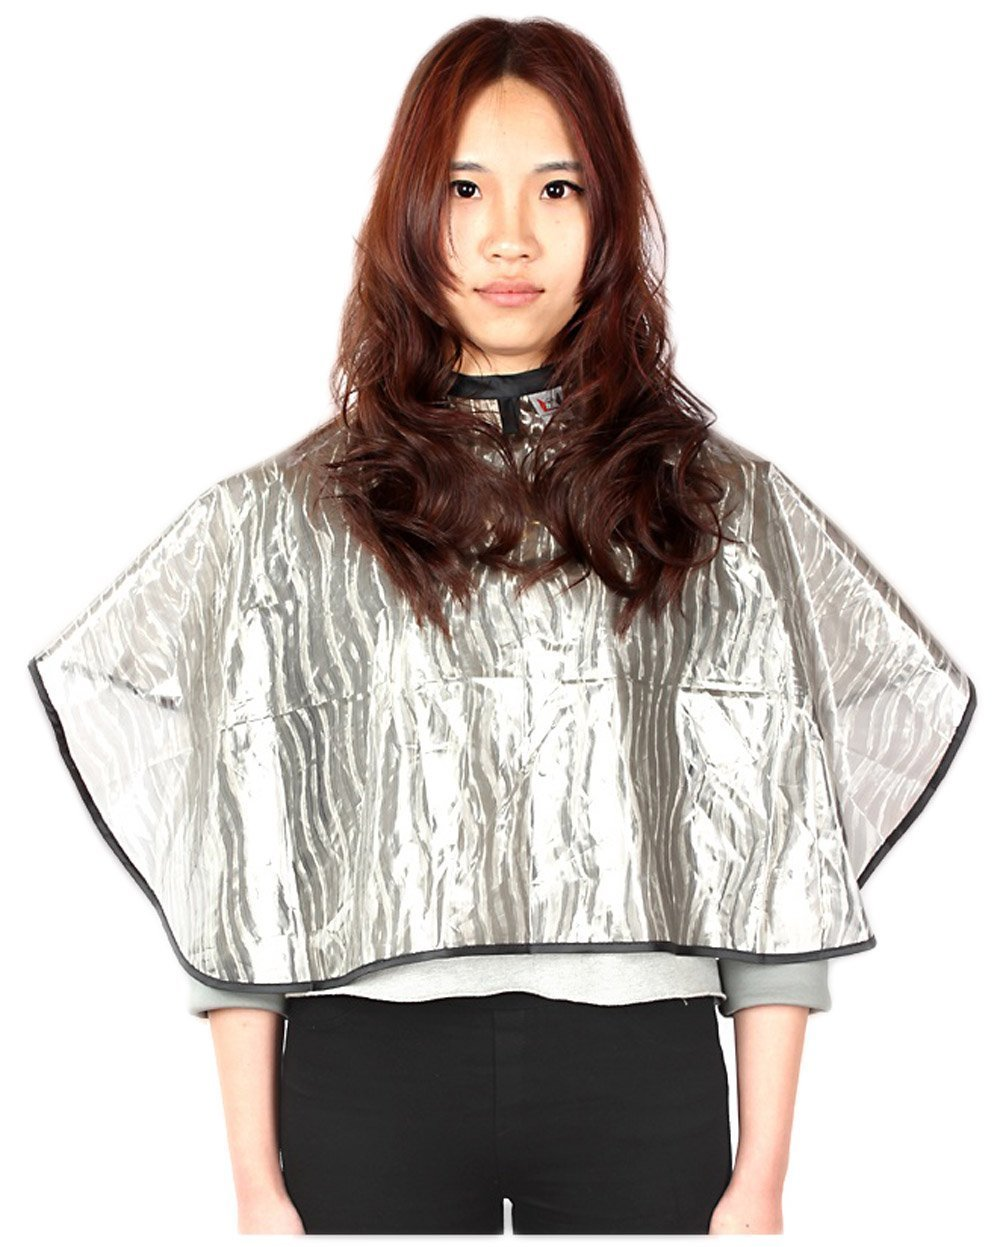 Waterproof Short Hair Cutting All Purpose Cape Gown Barber Hairdressing Salon Hair Dye Perm Short Cloth with Velcro Closure